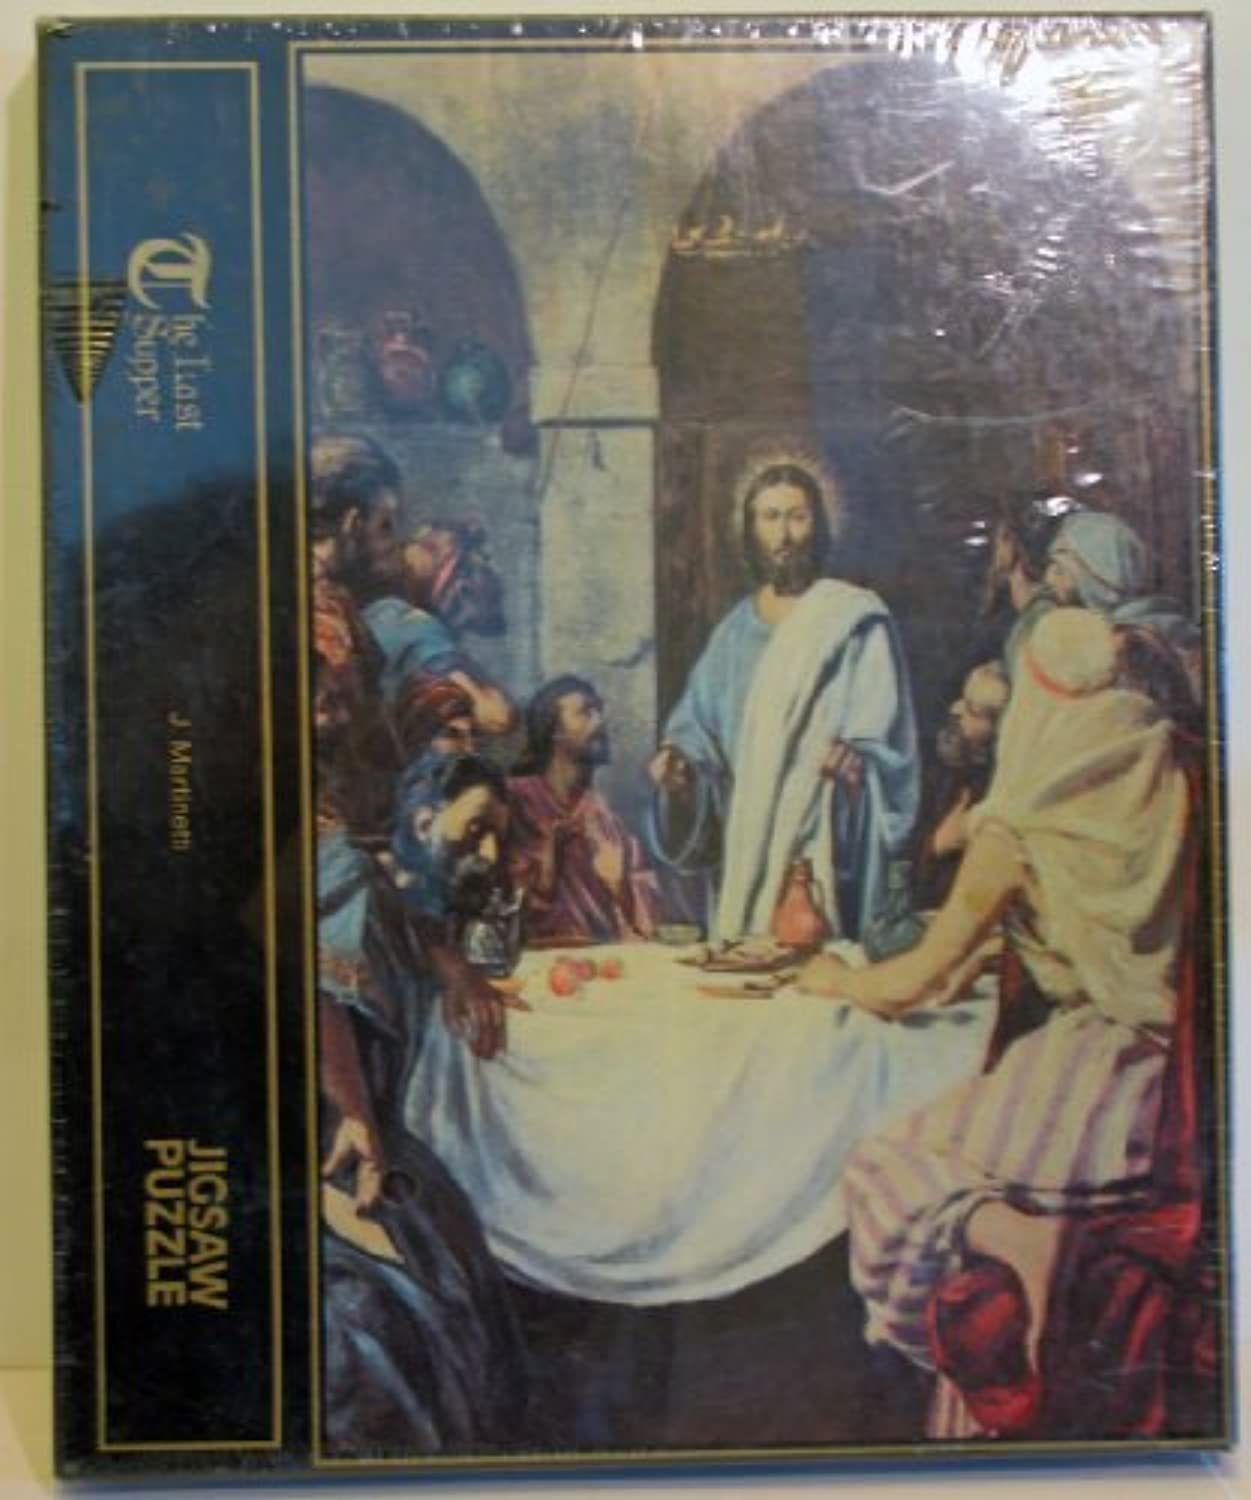 THE LAST SUPPER 500 PIECE JIGSAW PUZLE J. MARTINETTI by J Martinetti Puzzles